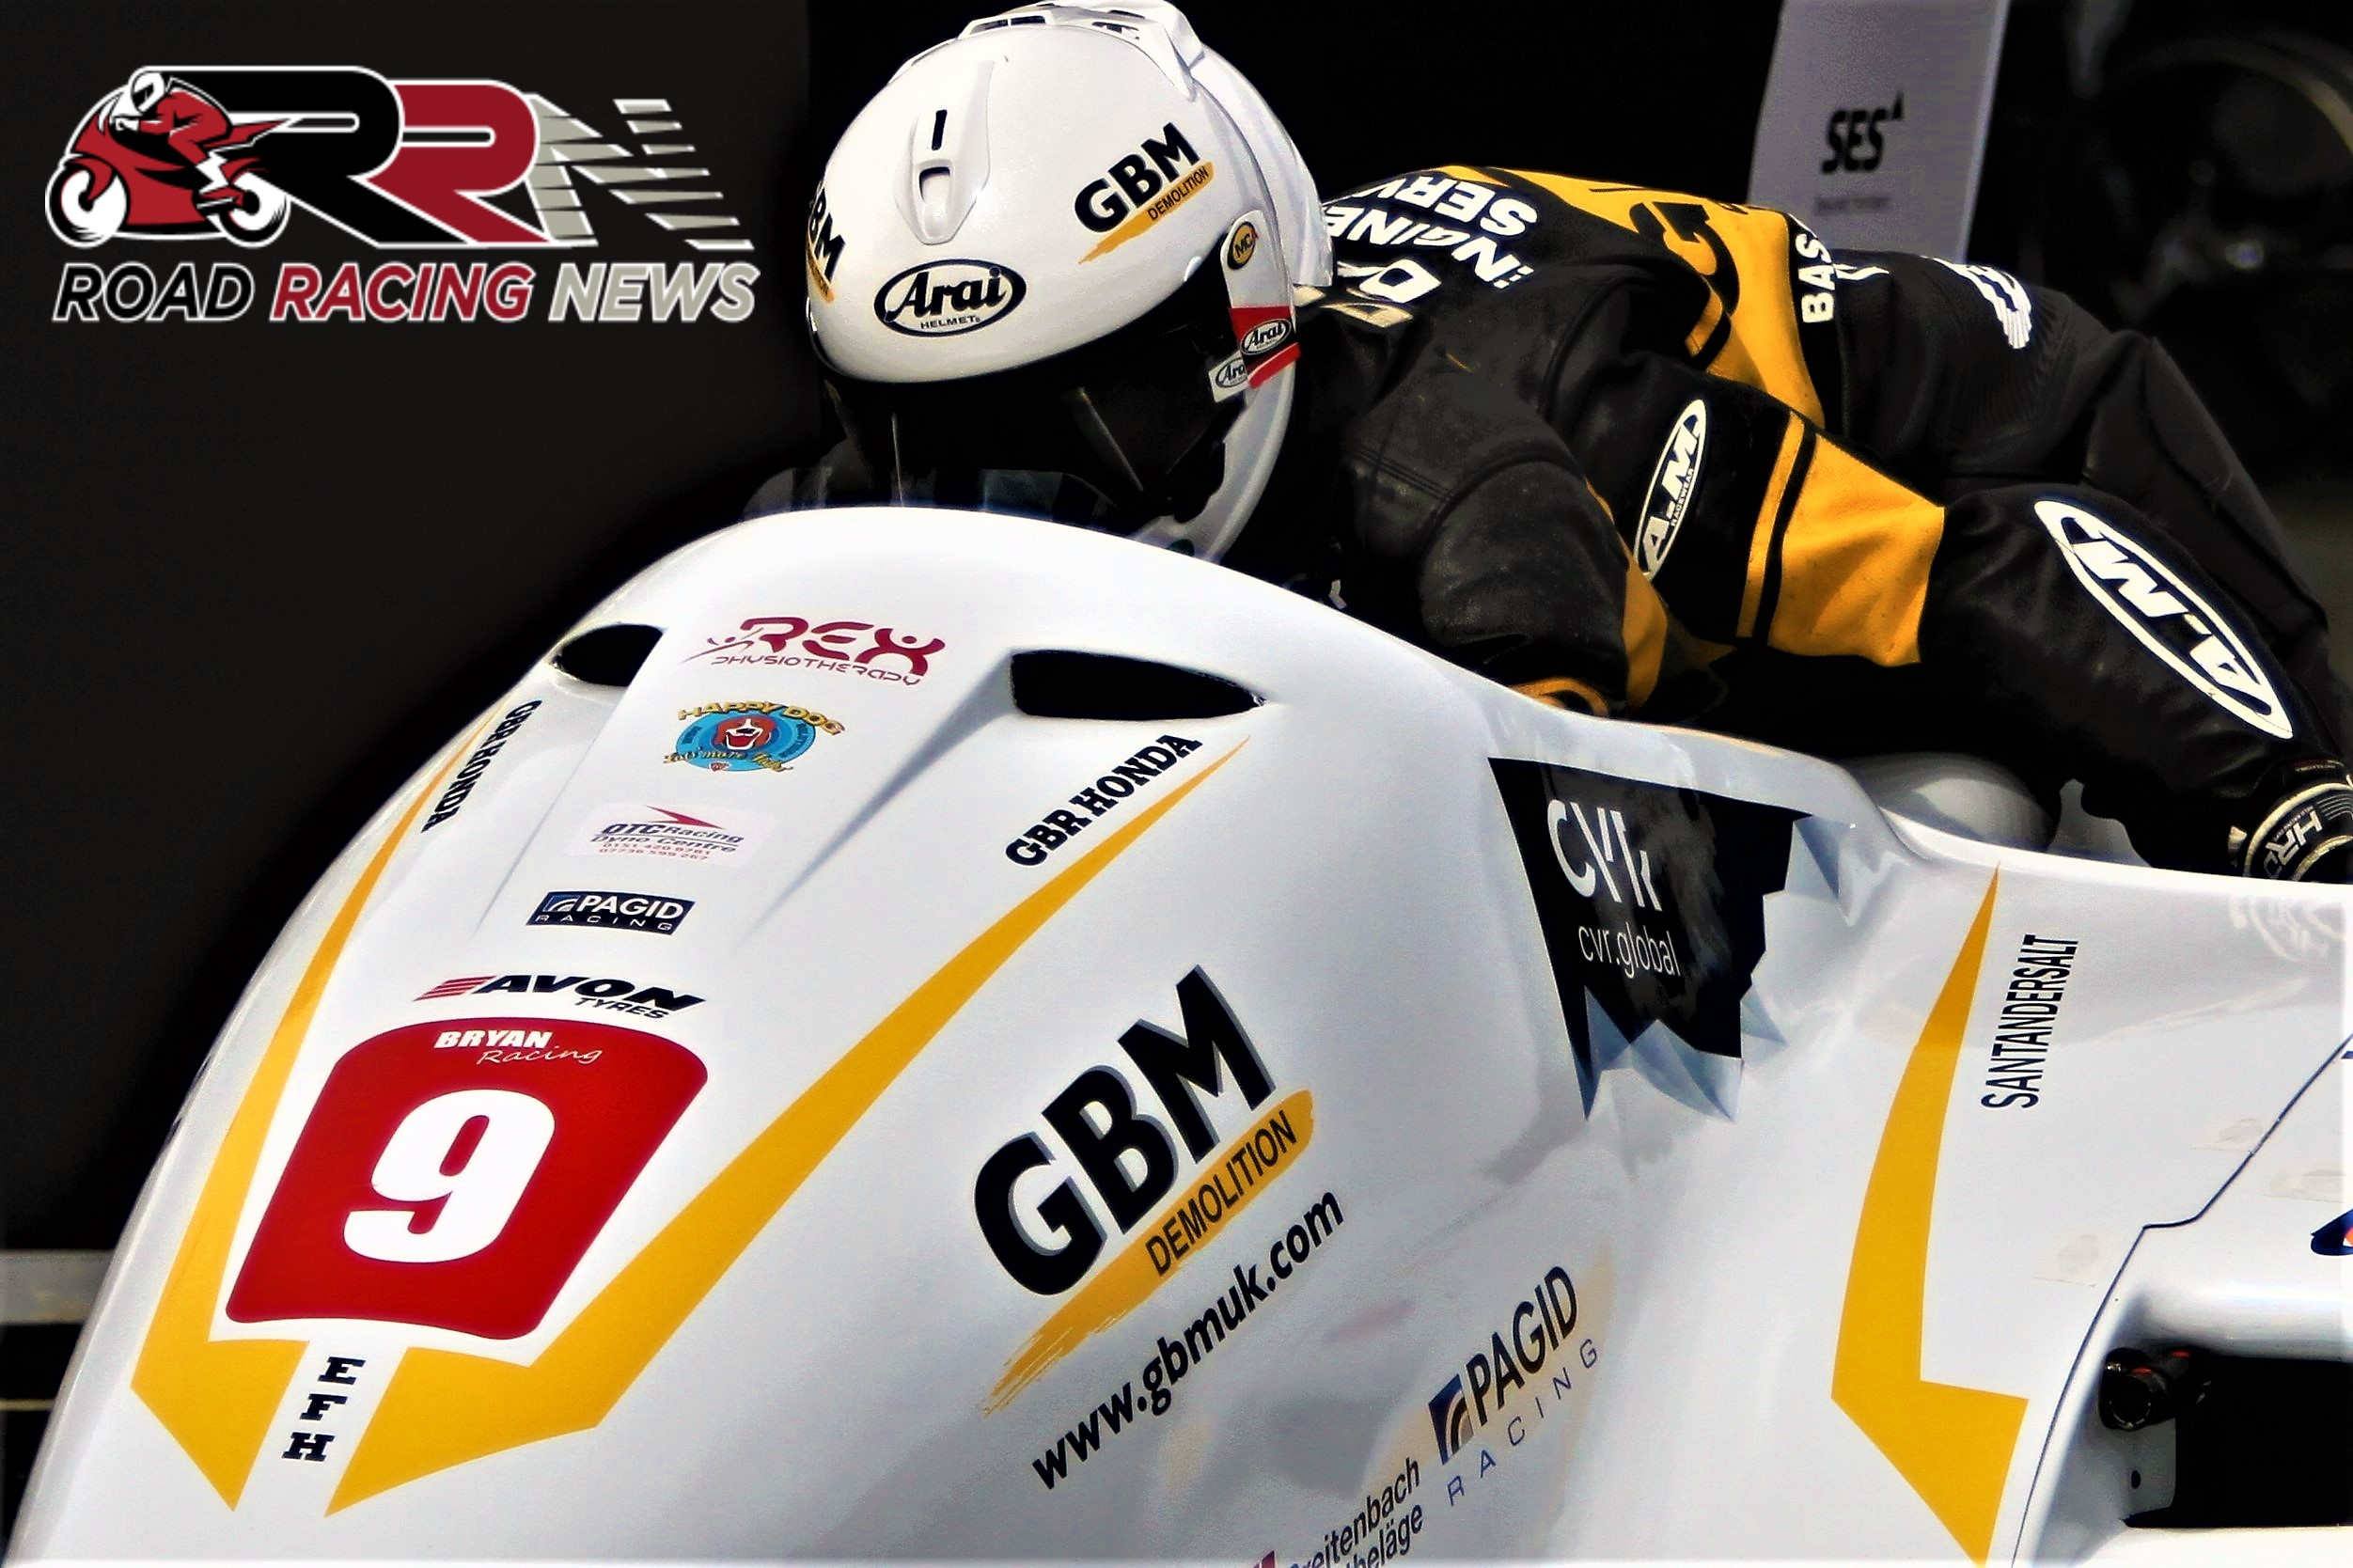 Bryan/Hyde Join Star Studied List Of Sidecar Giants Venturing To Wanganui